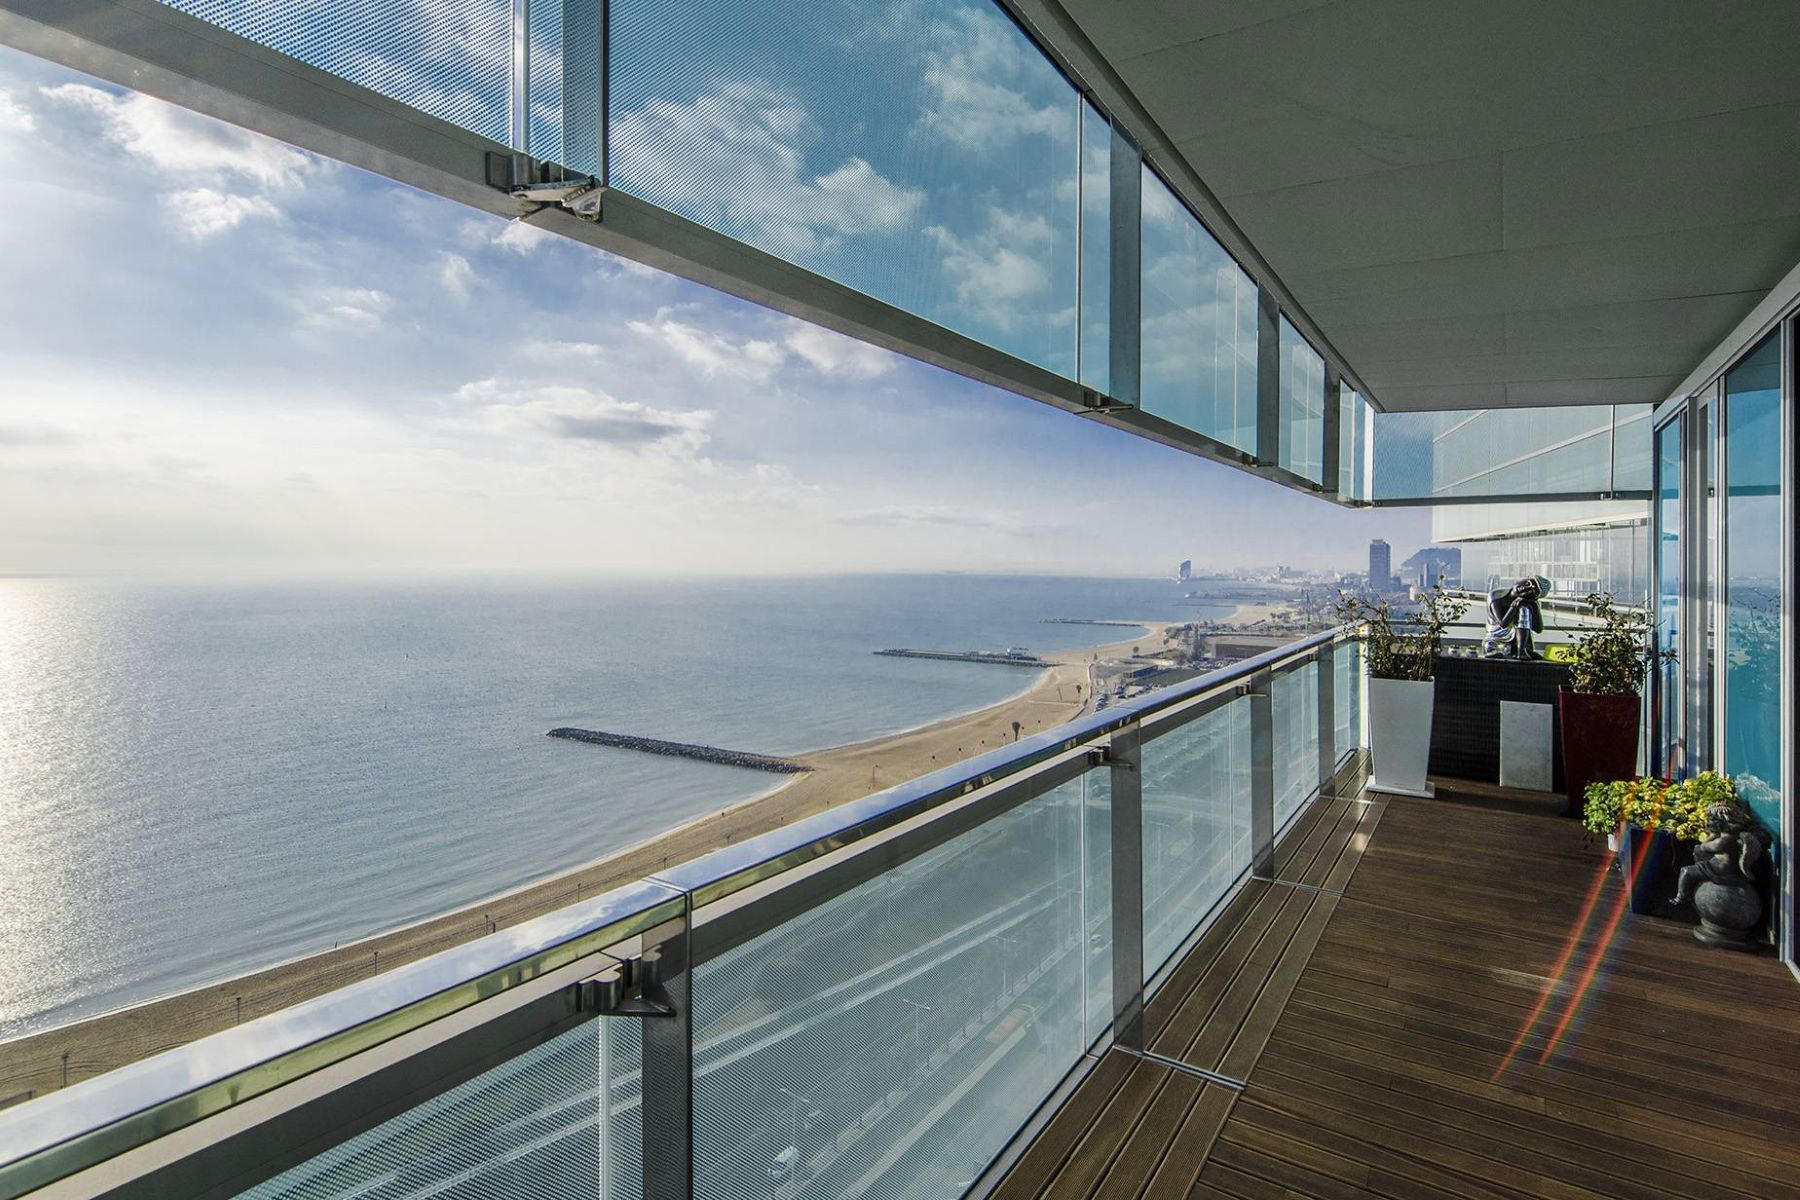 Apartamento para Venda às Exclusive Seafront Apartment with excellent views to the sea and the city of ... Barcelona City, Barcelona, 08019 Espanha